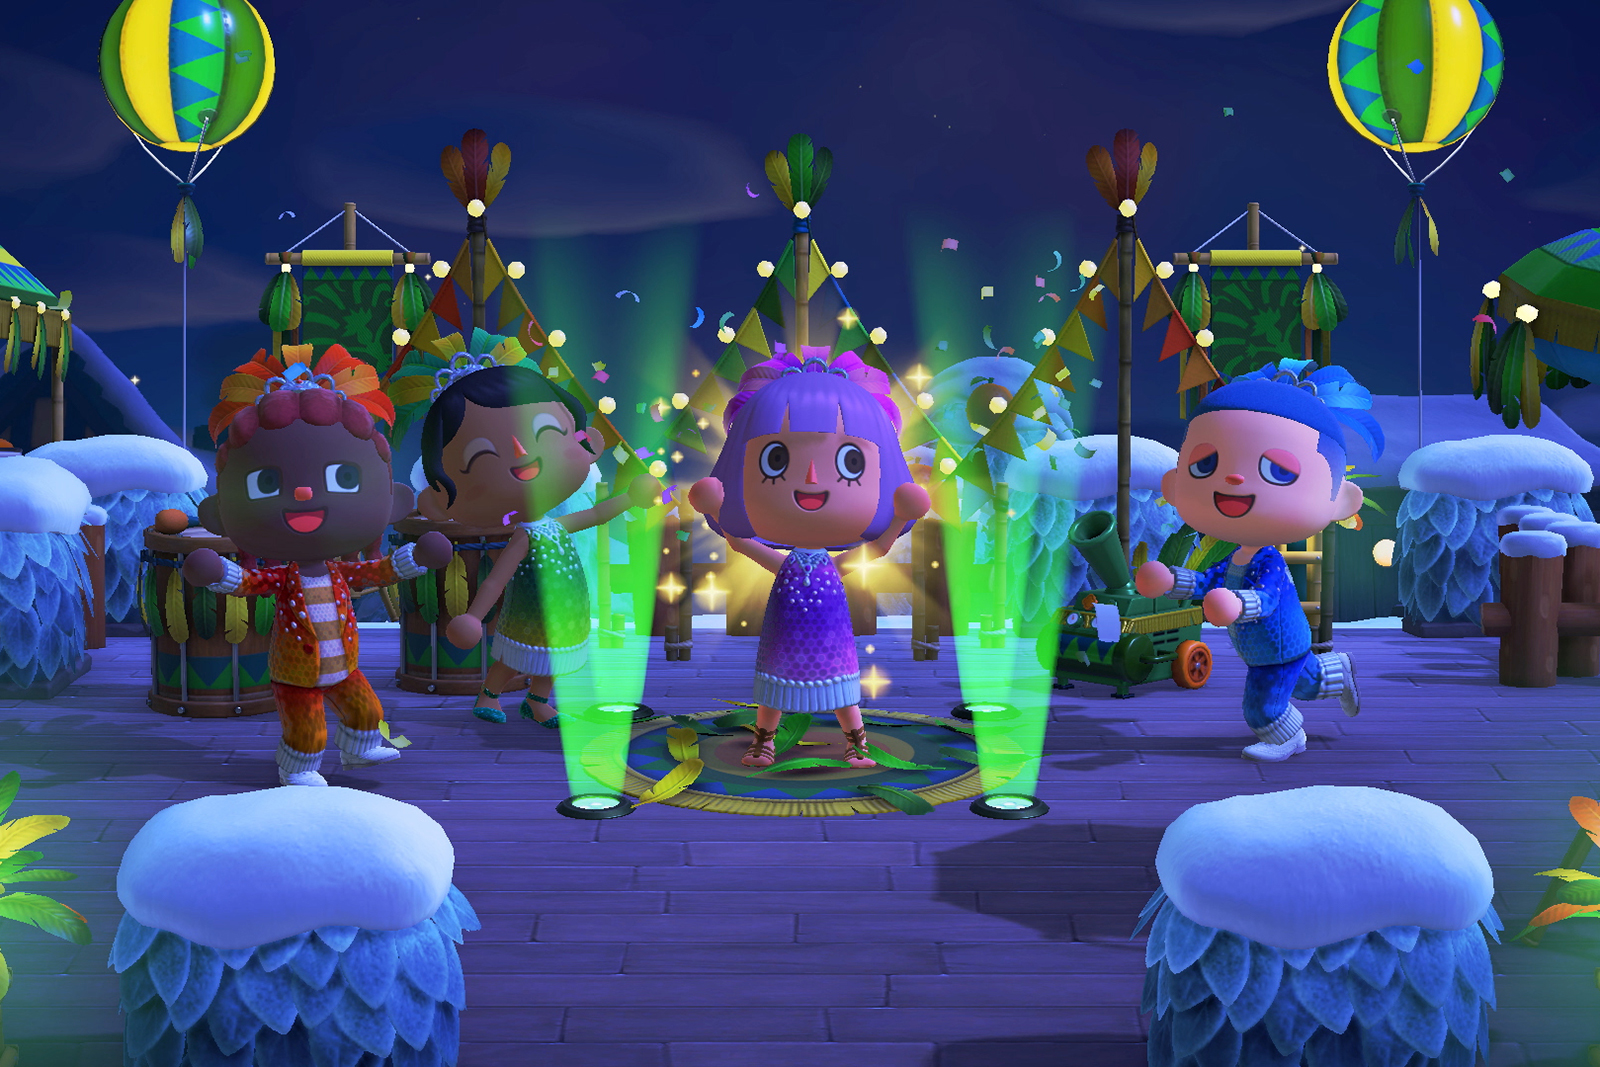 'Animal Crossing' updates send Mario and Hello Kitty to Carnival